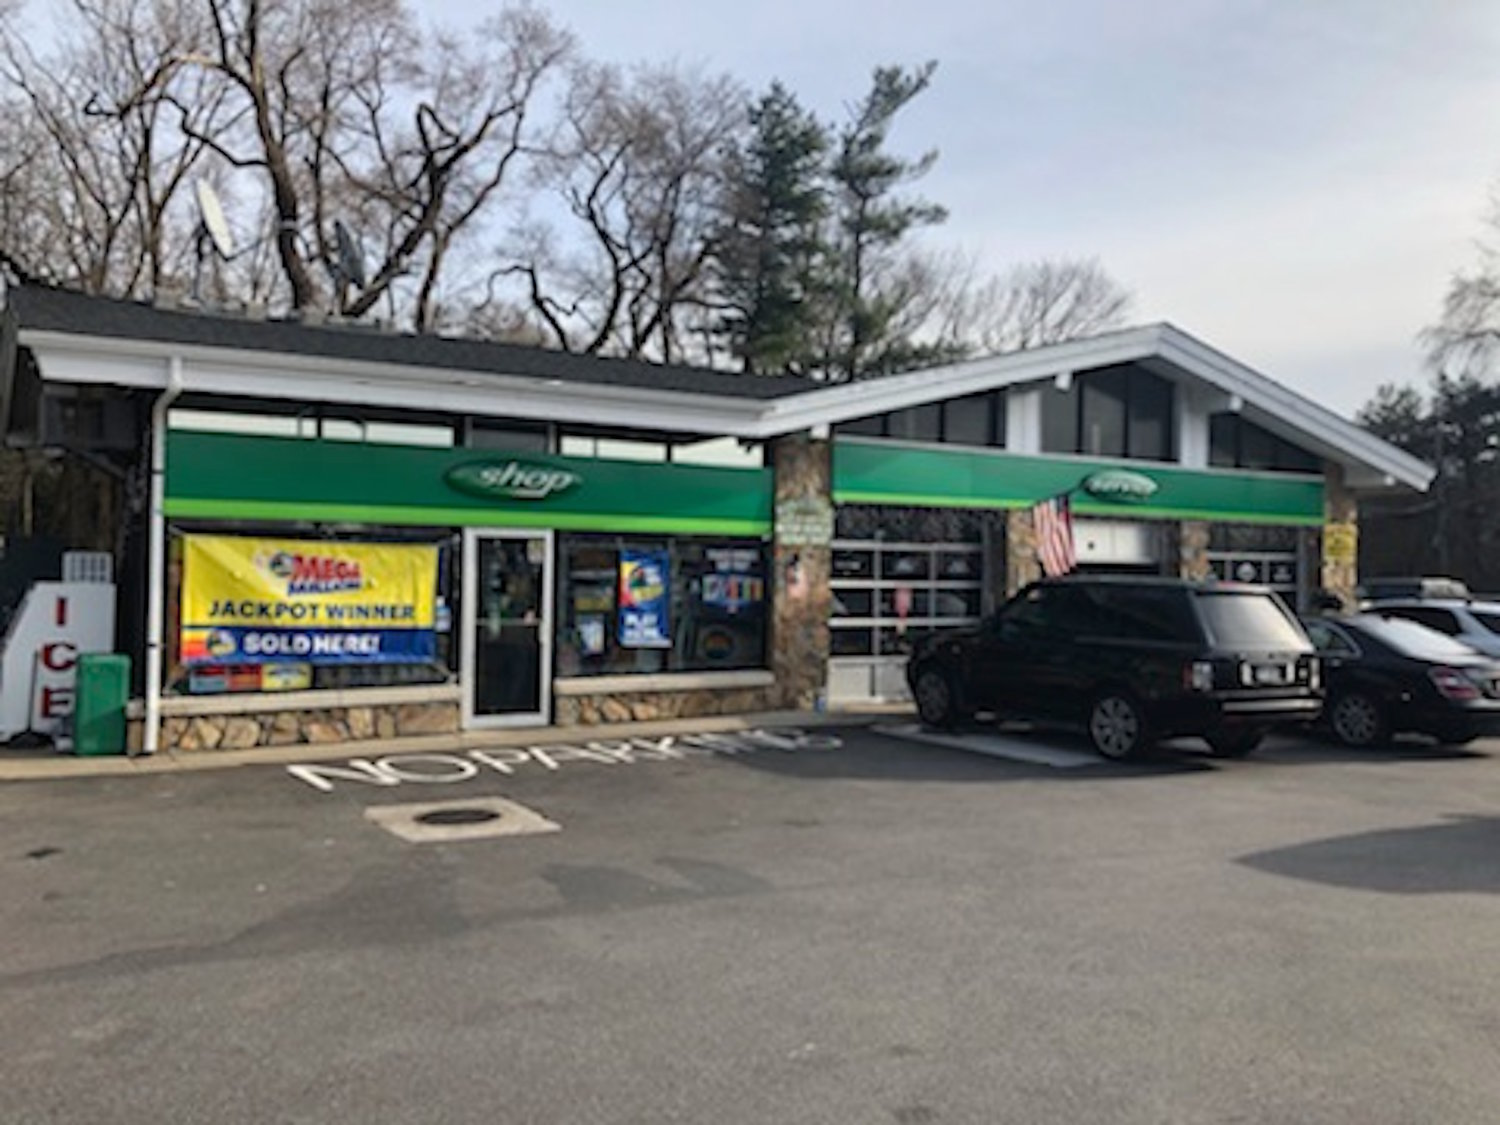 A lucky individual picked up a winning lottery ticket at a gas station in Glen Head on New Years Day.